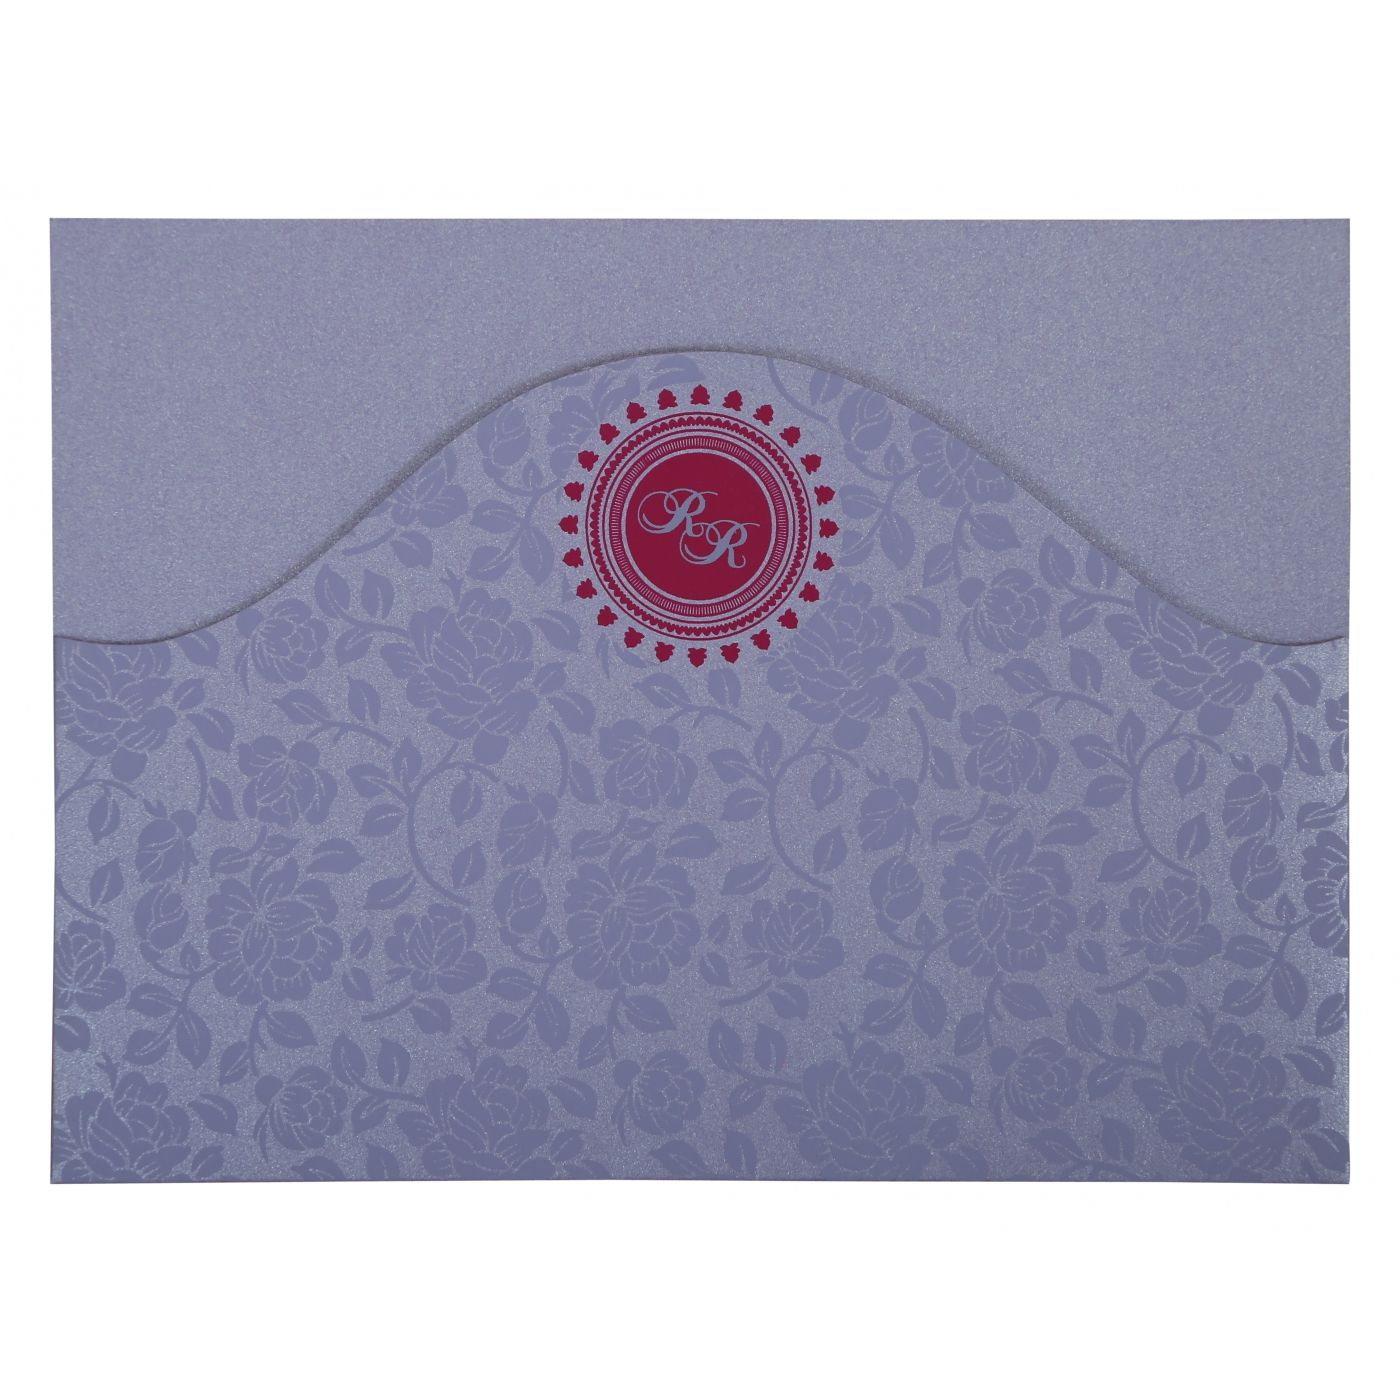 LAVENDER PURPLE SHIMMERY FLORAL THEMED - SCREEN PRINTED WEDDING INVITATION : CSO-802B - IndianWeddingCards